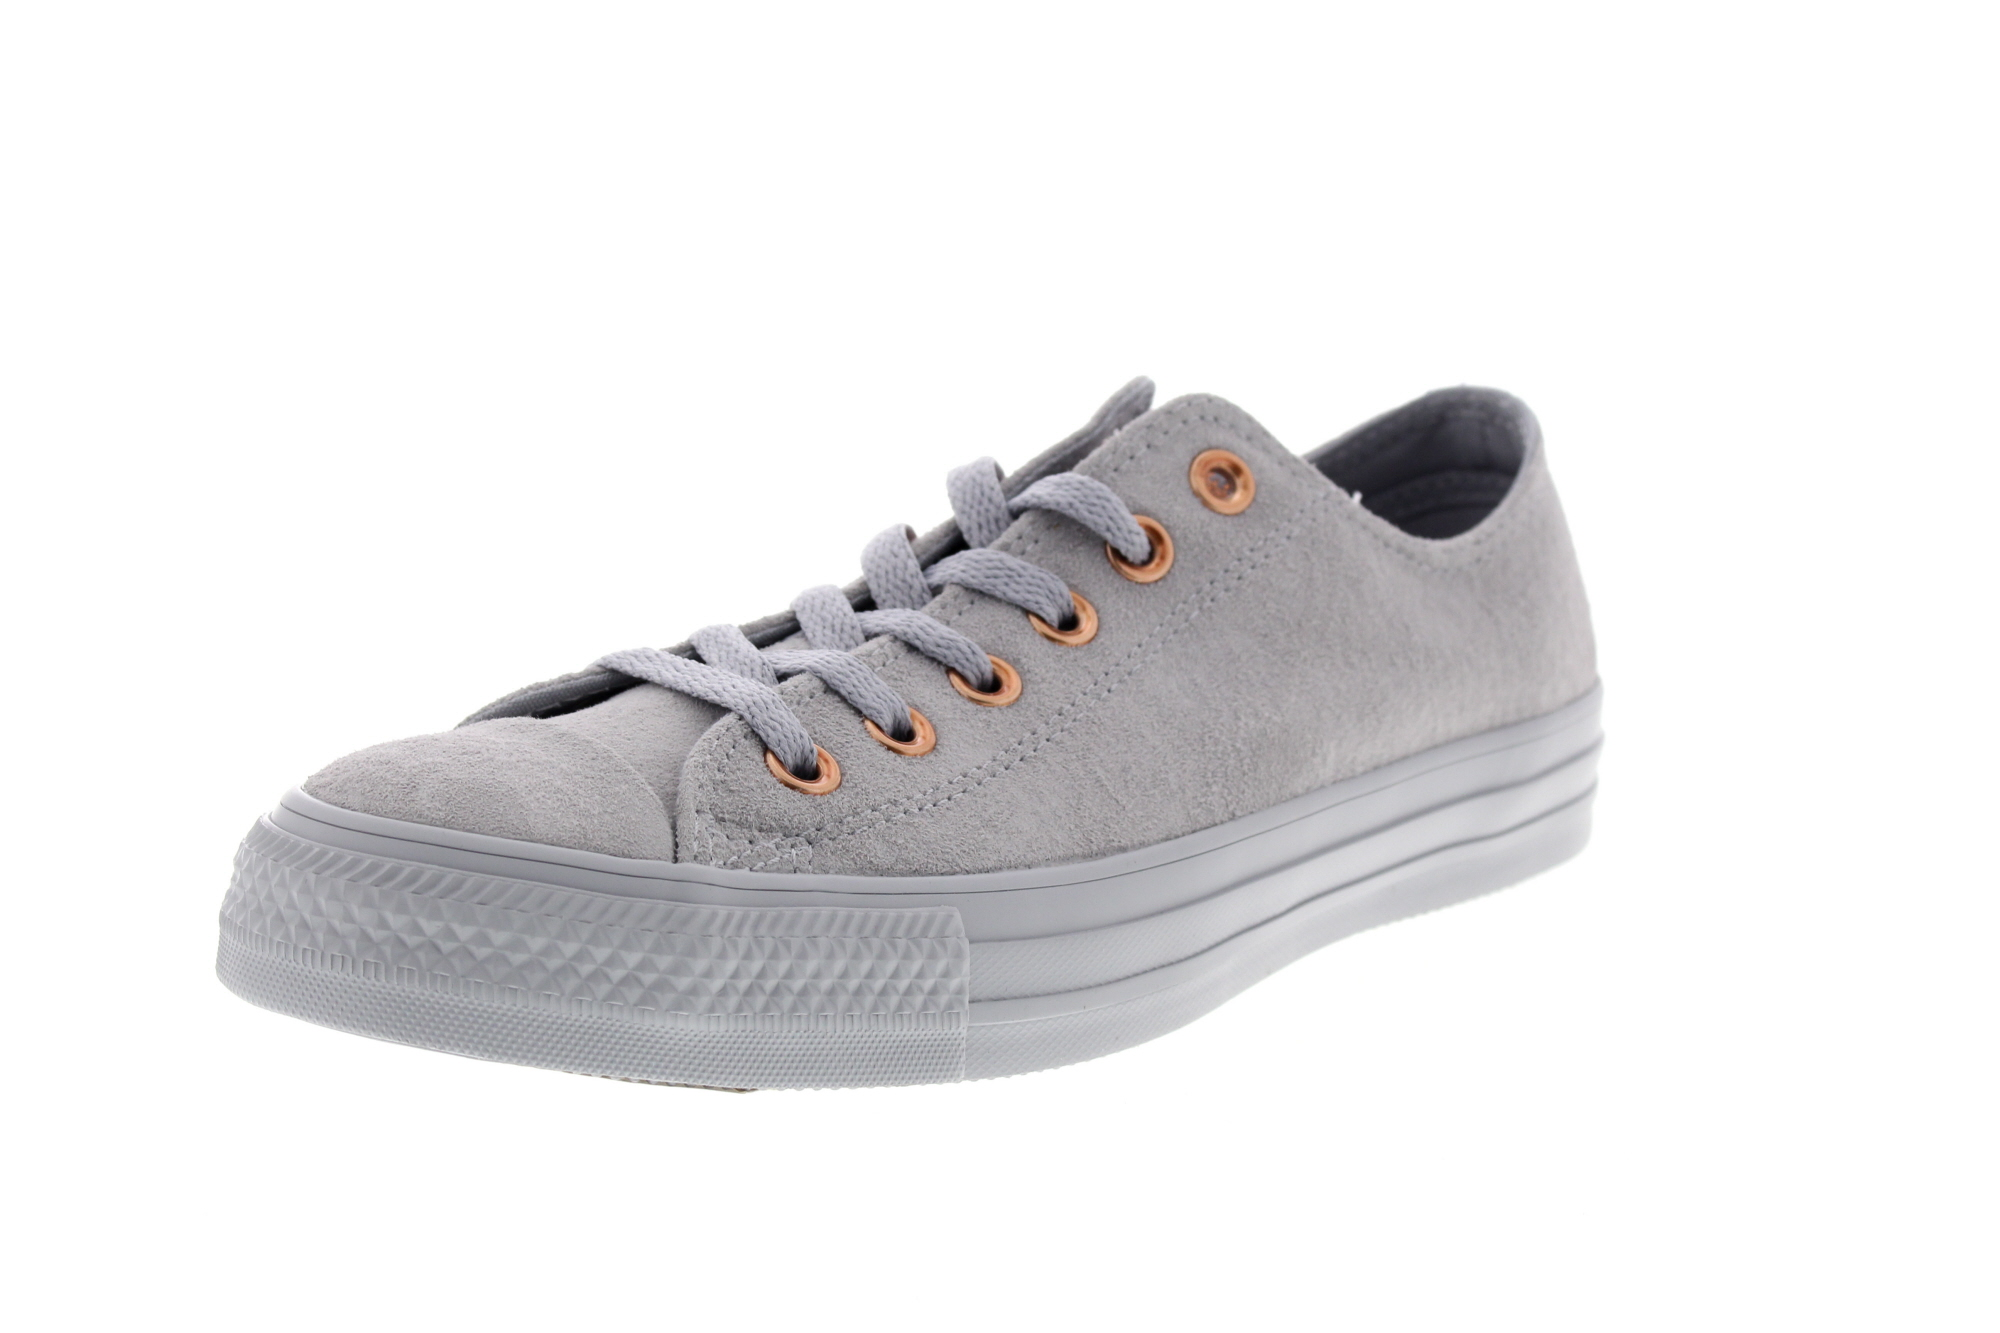 CONVERSE Damen Sneakers CTAS OX 161206C wolf grey blue0-6509